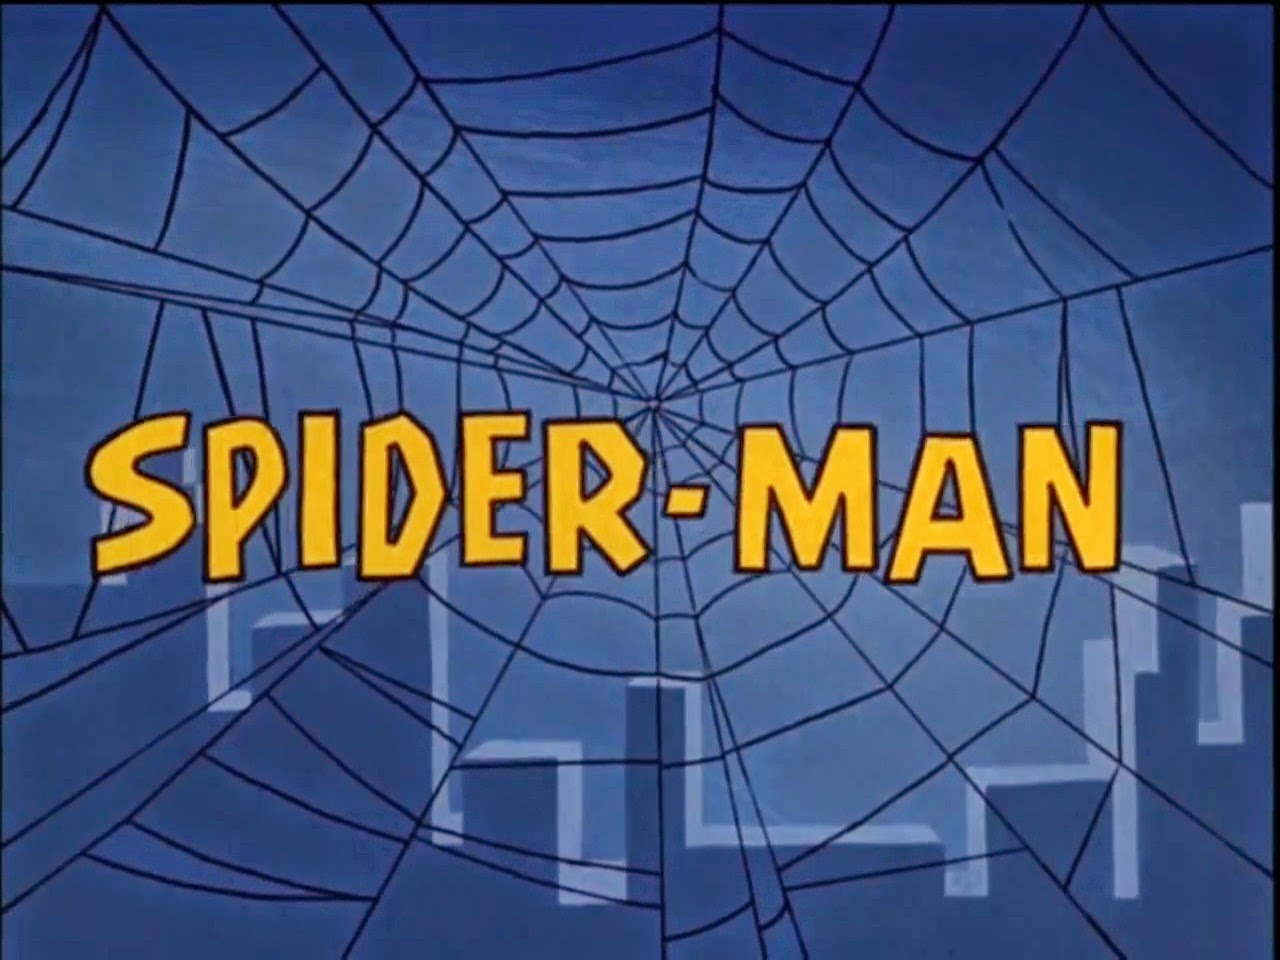 http://saturdaymorningsforever.blogspot.com/2014/09/spider-man-1967.html